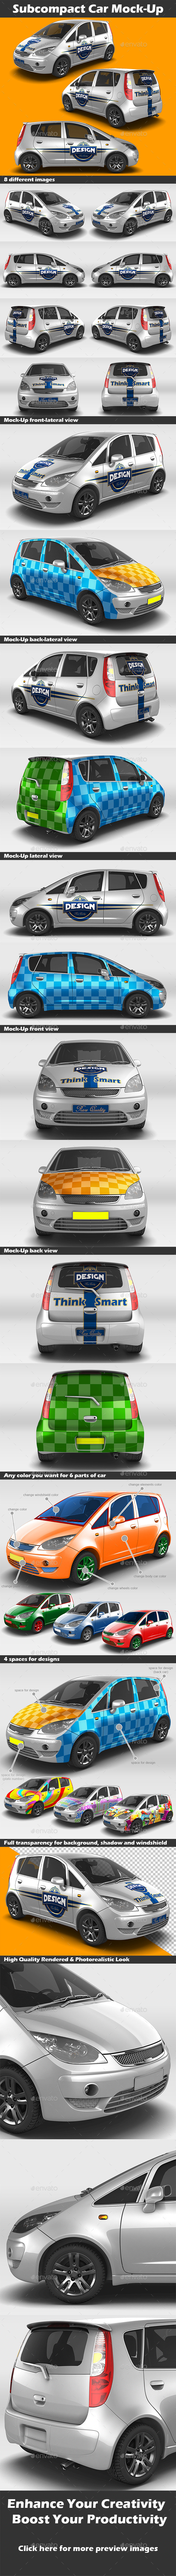 Subcompact Car Mock-Up - Vehicle Wraps Print